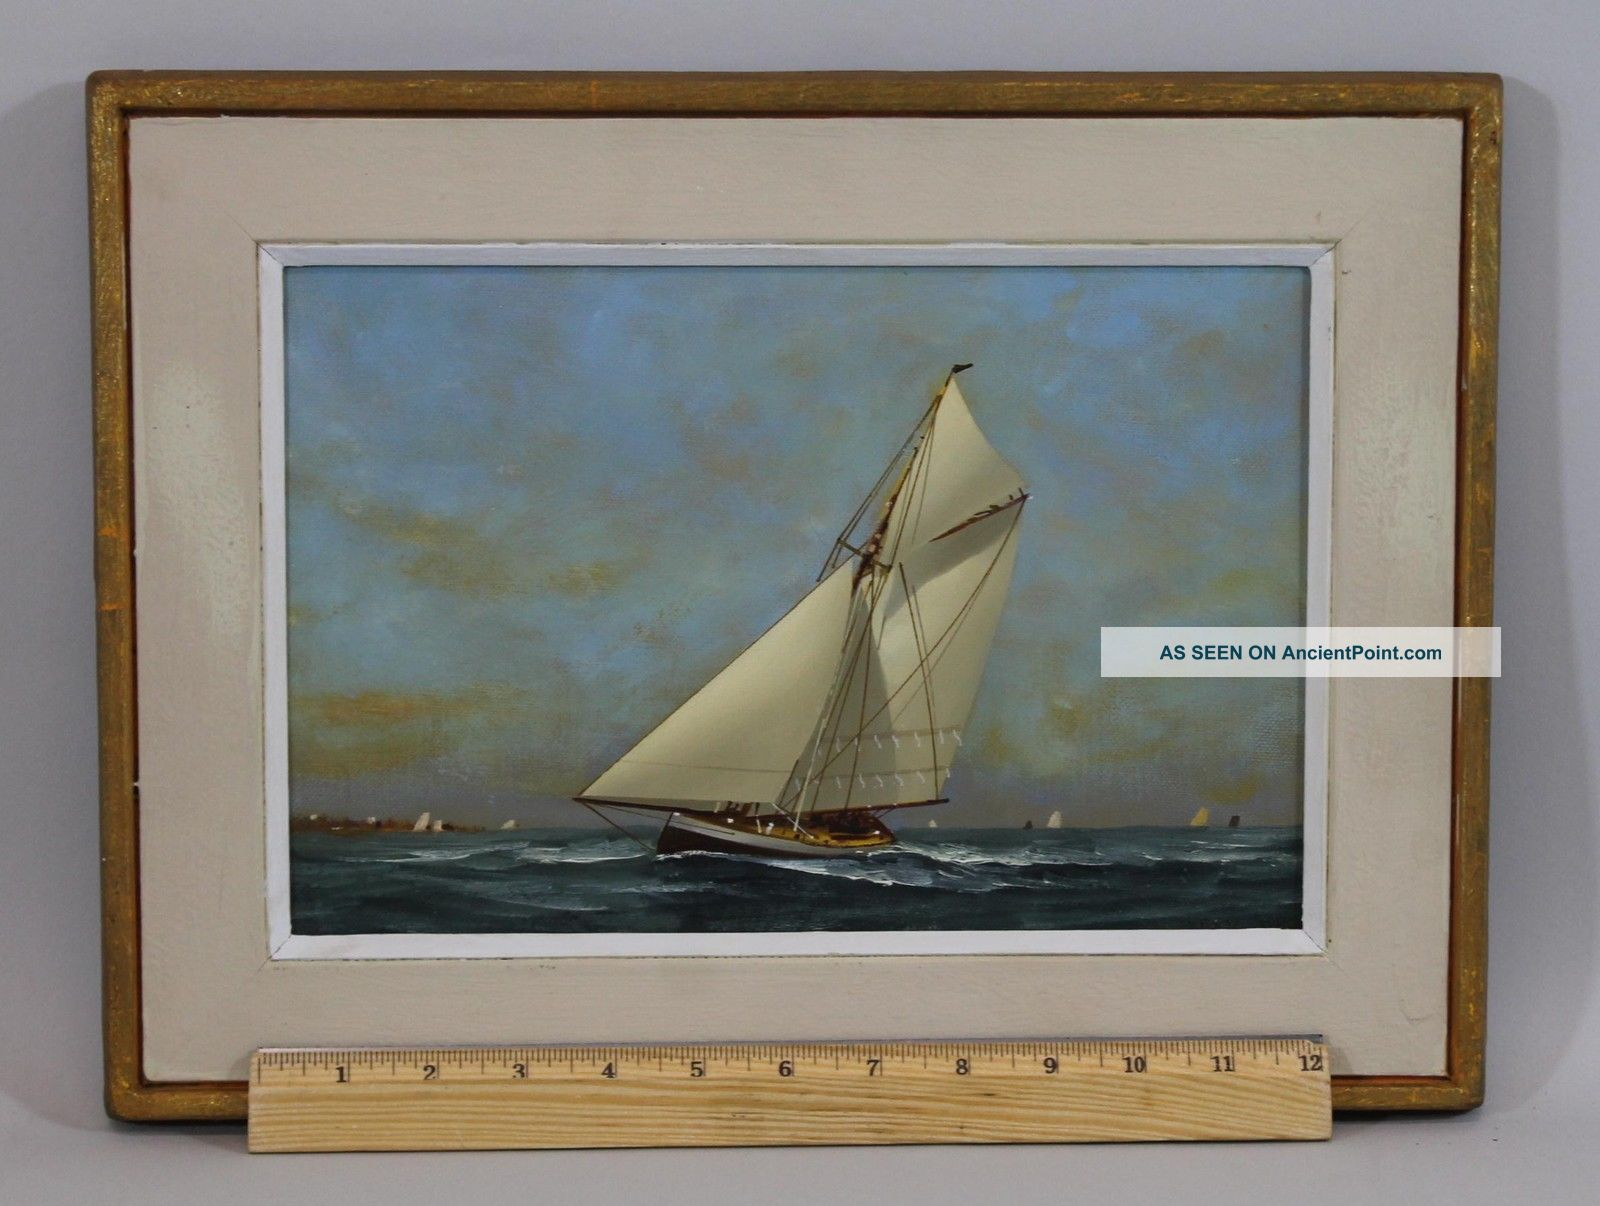 Small Vintage Vernon Broe Maritime Seascape Cape Cod Sailboat Oil Painting Other Maritime Antiques photo